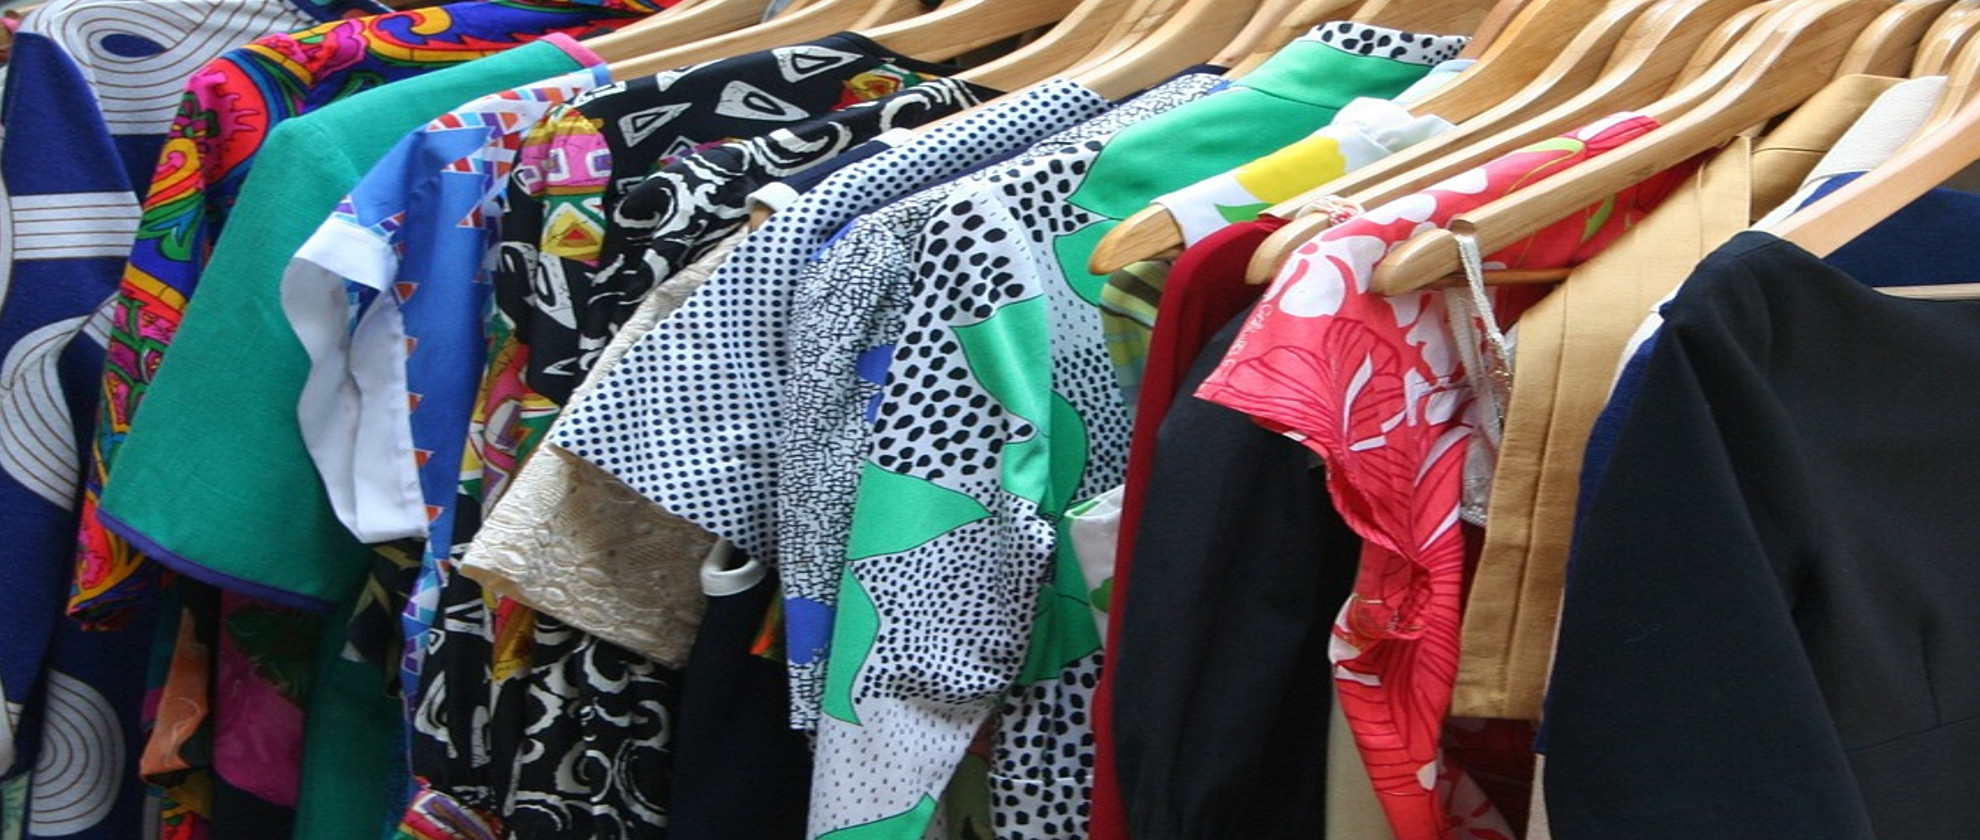 De-clutter Your Wardrobe in 6 Simple Steps!